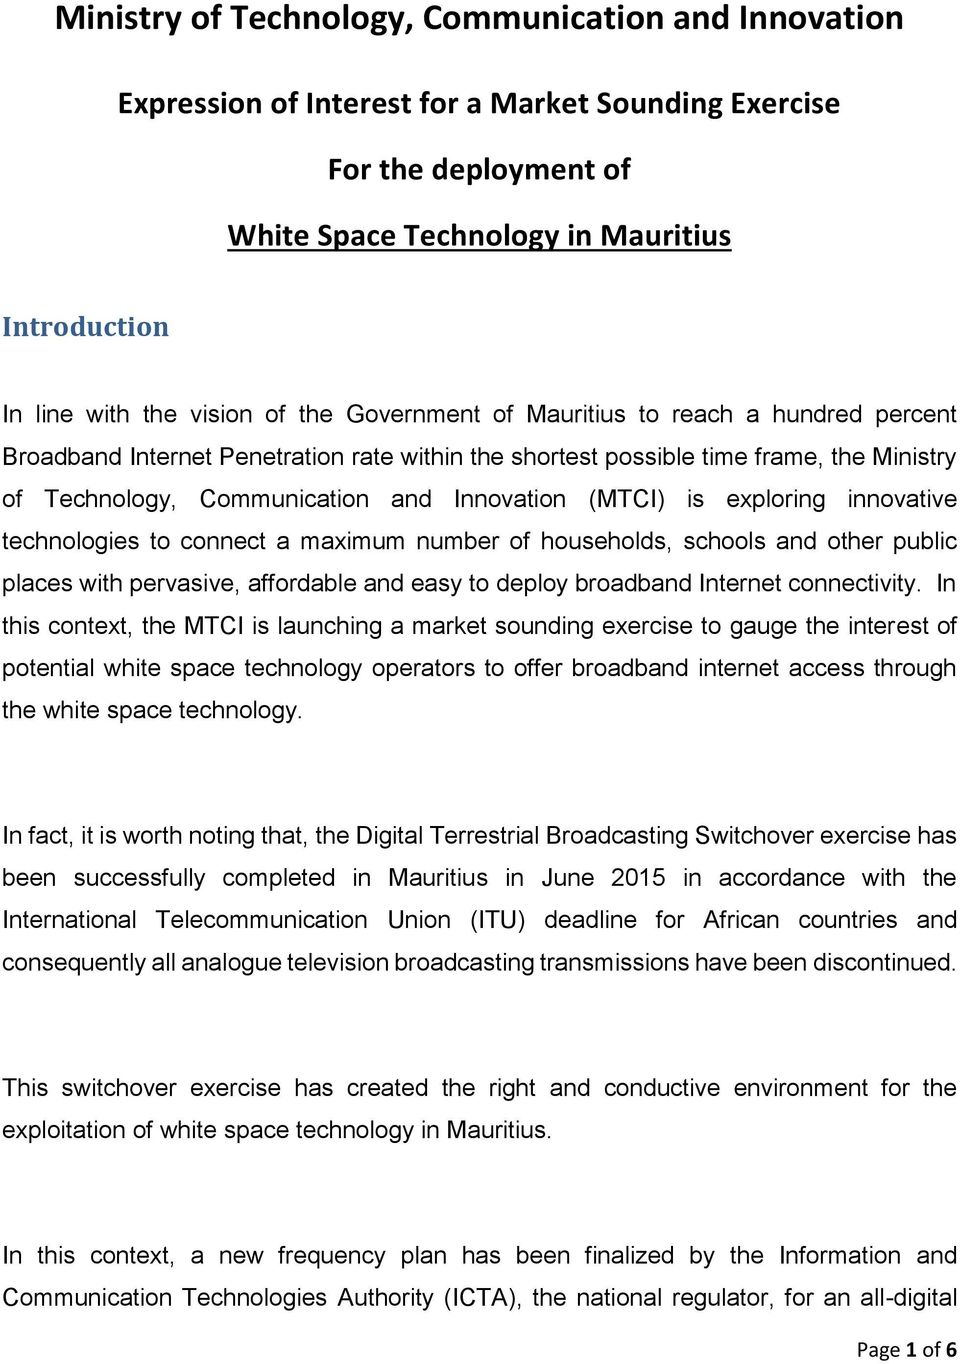 (MTCI) is exploring innovative technologies to connect a maximum number of households, schools and other public places with pervasive, affordable and easy to deploy broadband Internet connectivity.